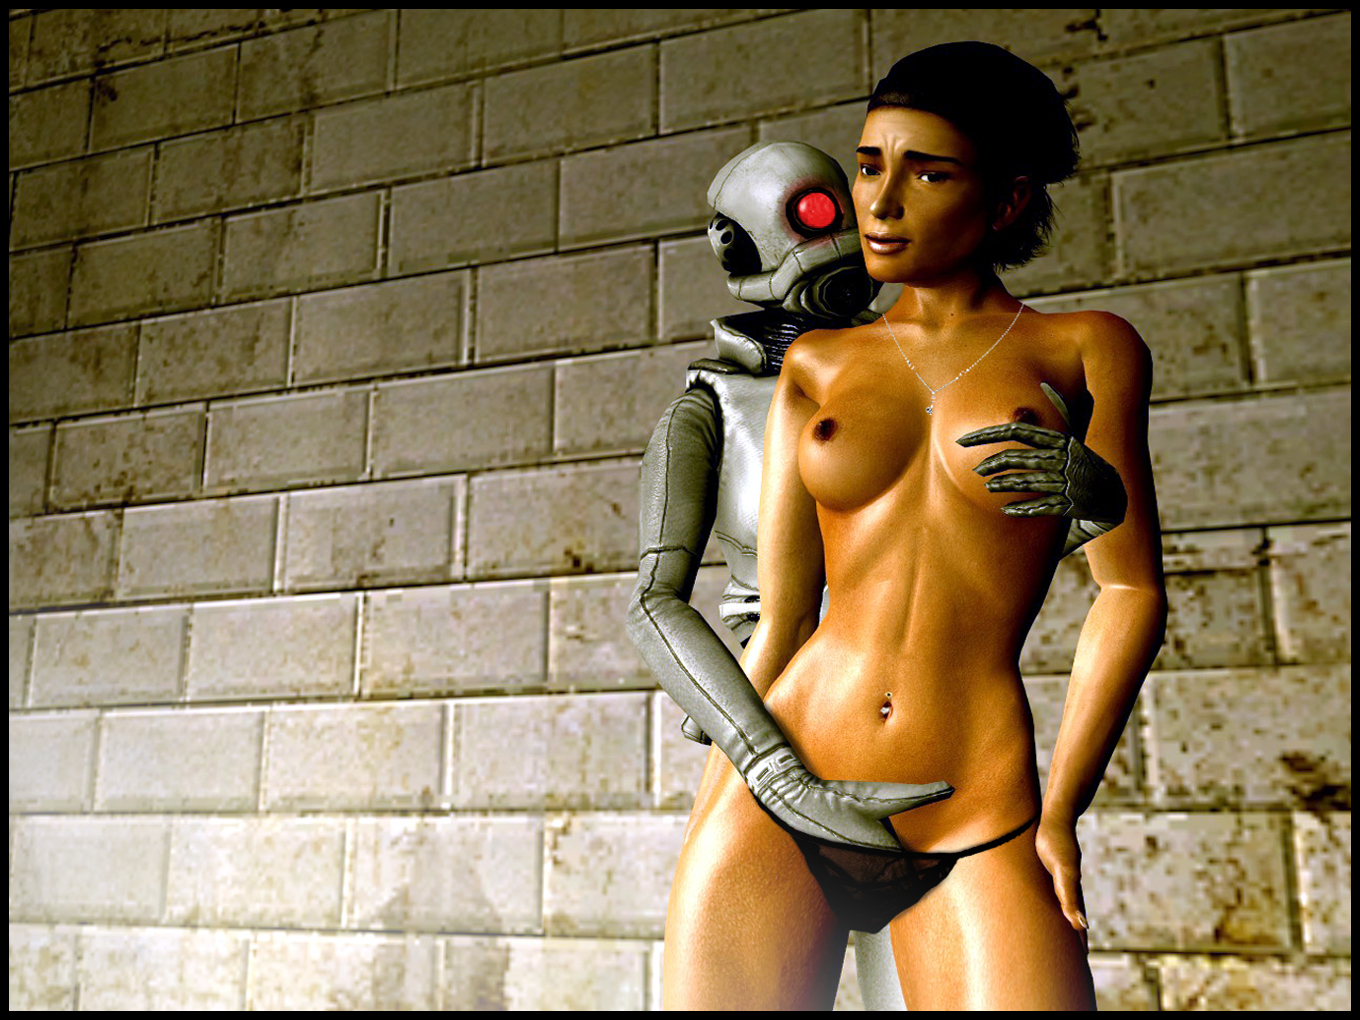 Half - life erotic exploited photo